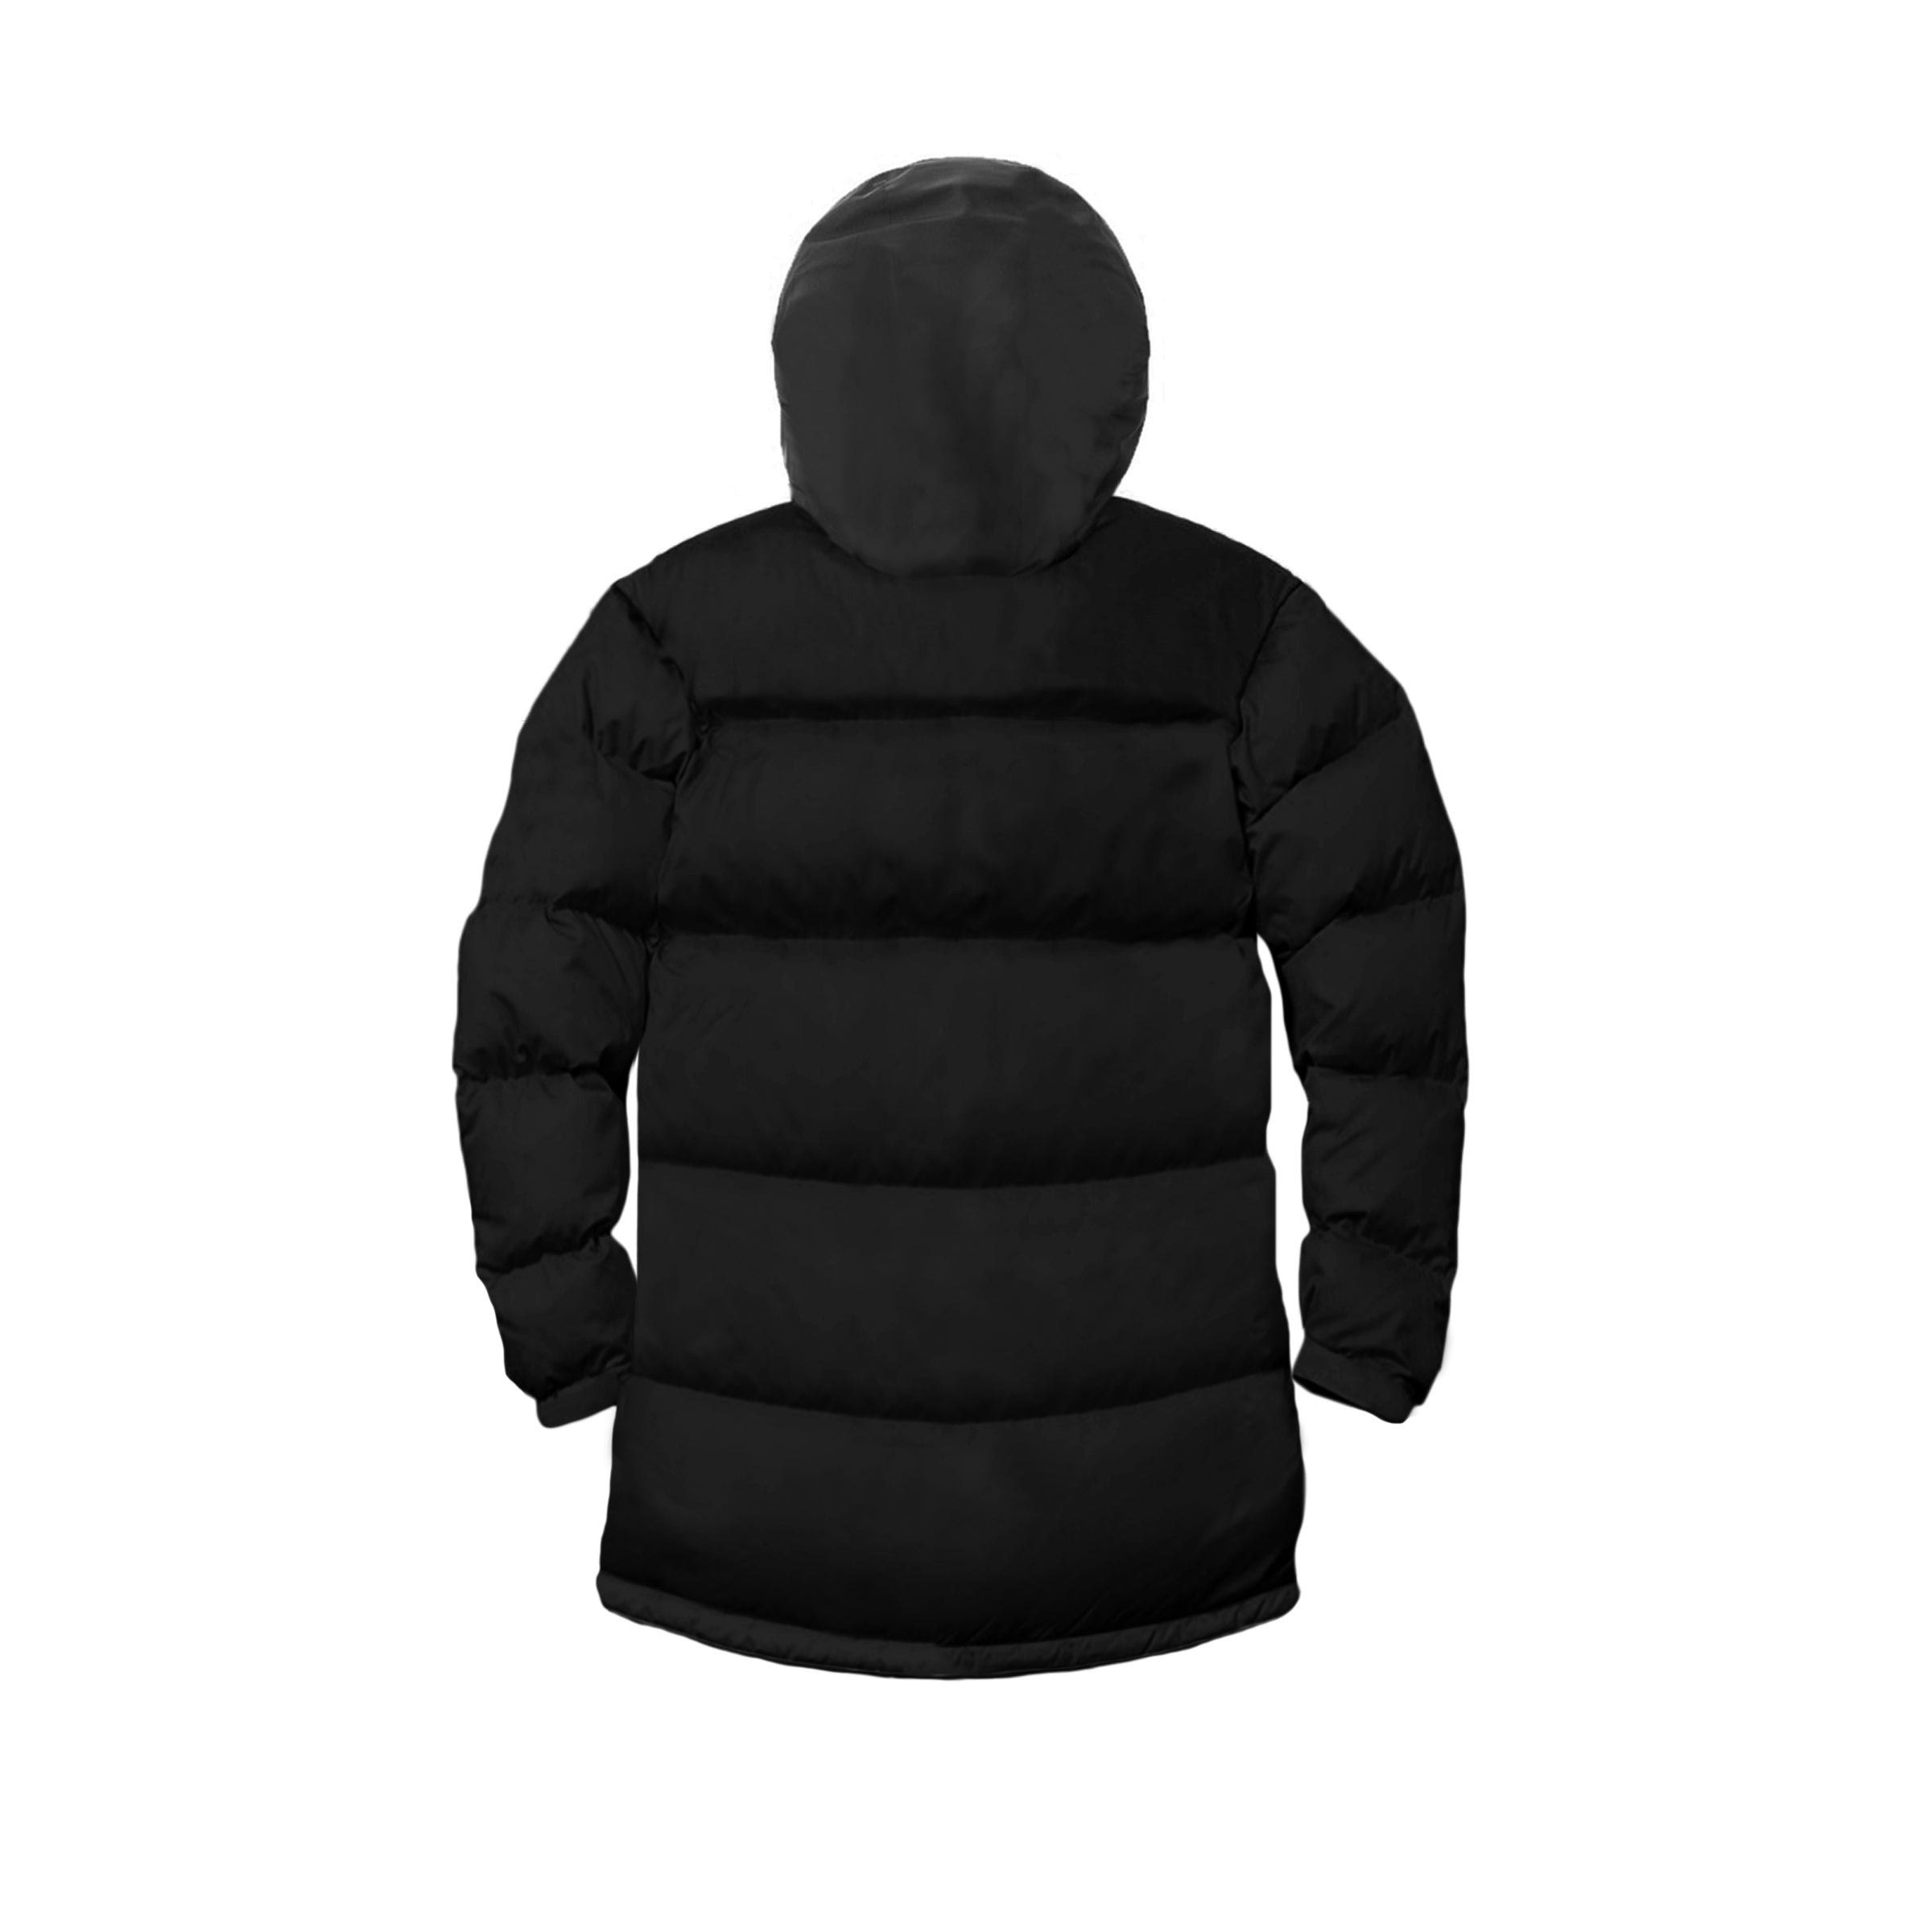 Puffer Jacket - Black image 3